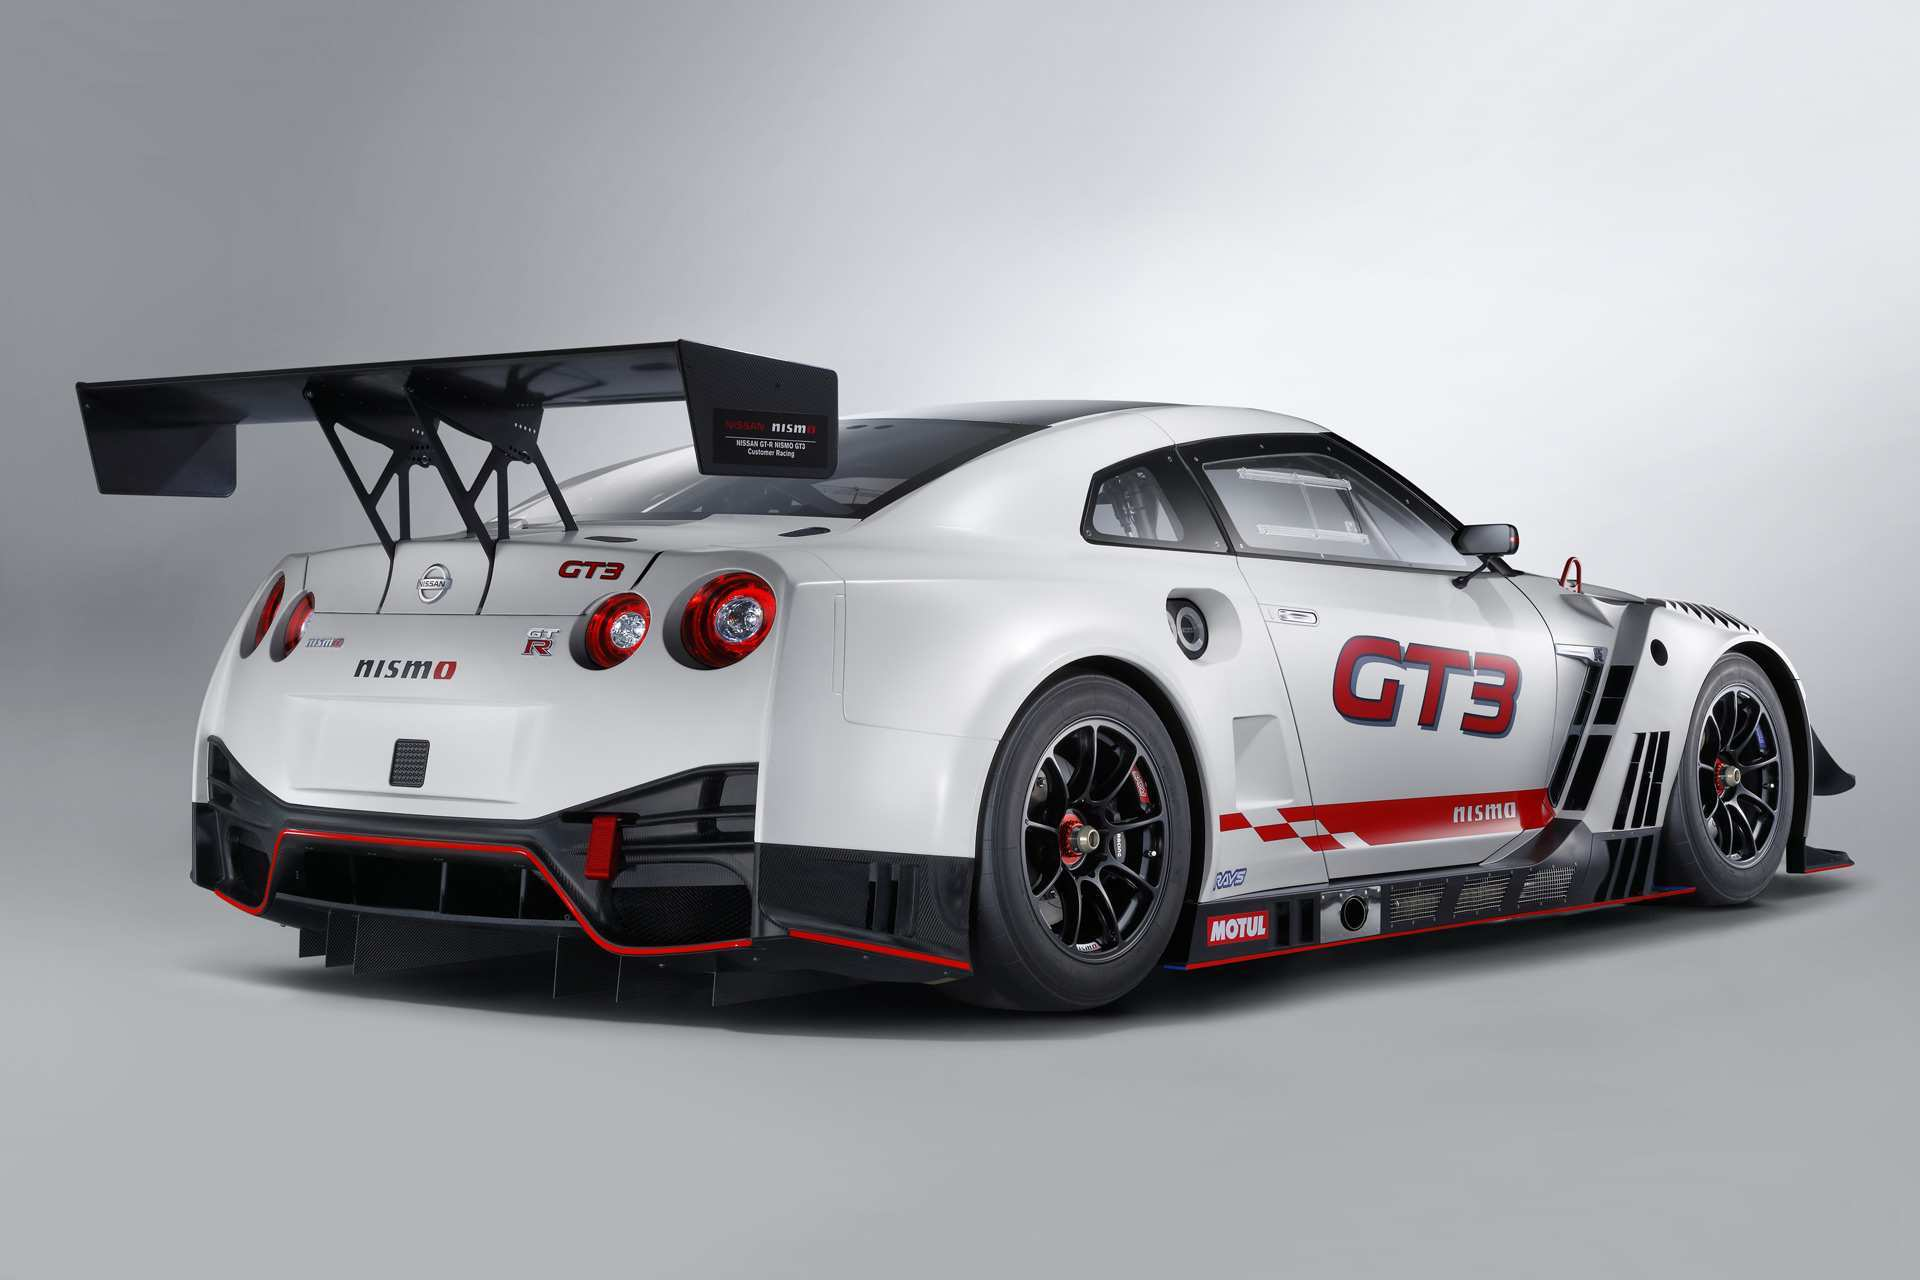 51 The Best 2019 Nissan Gt R New Model And Performance